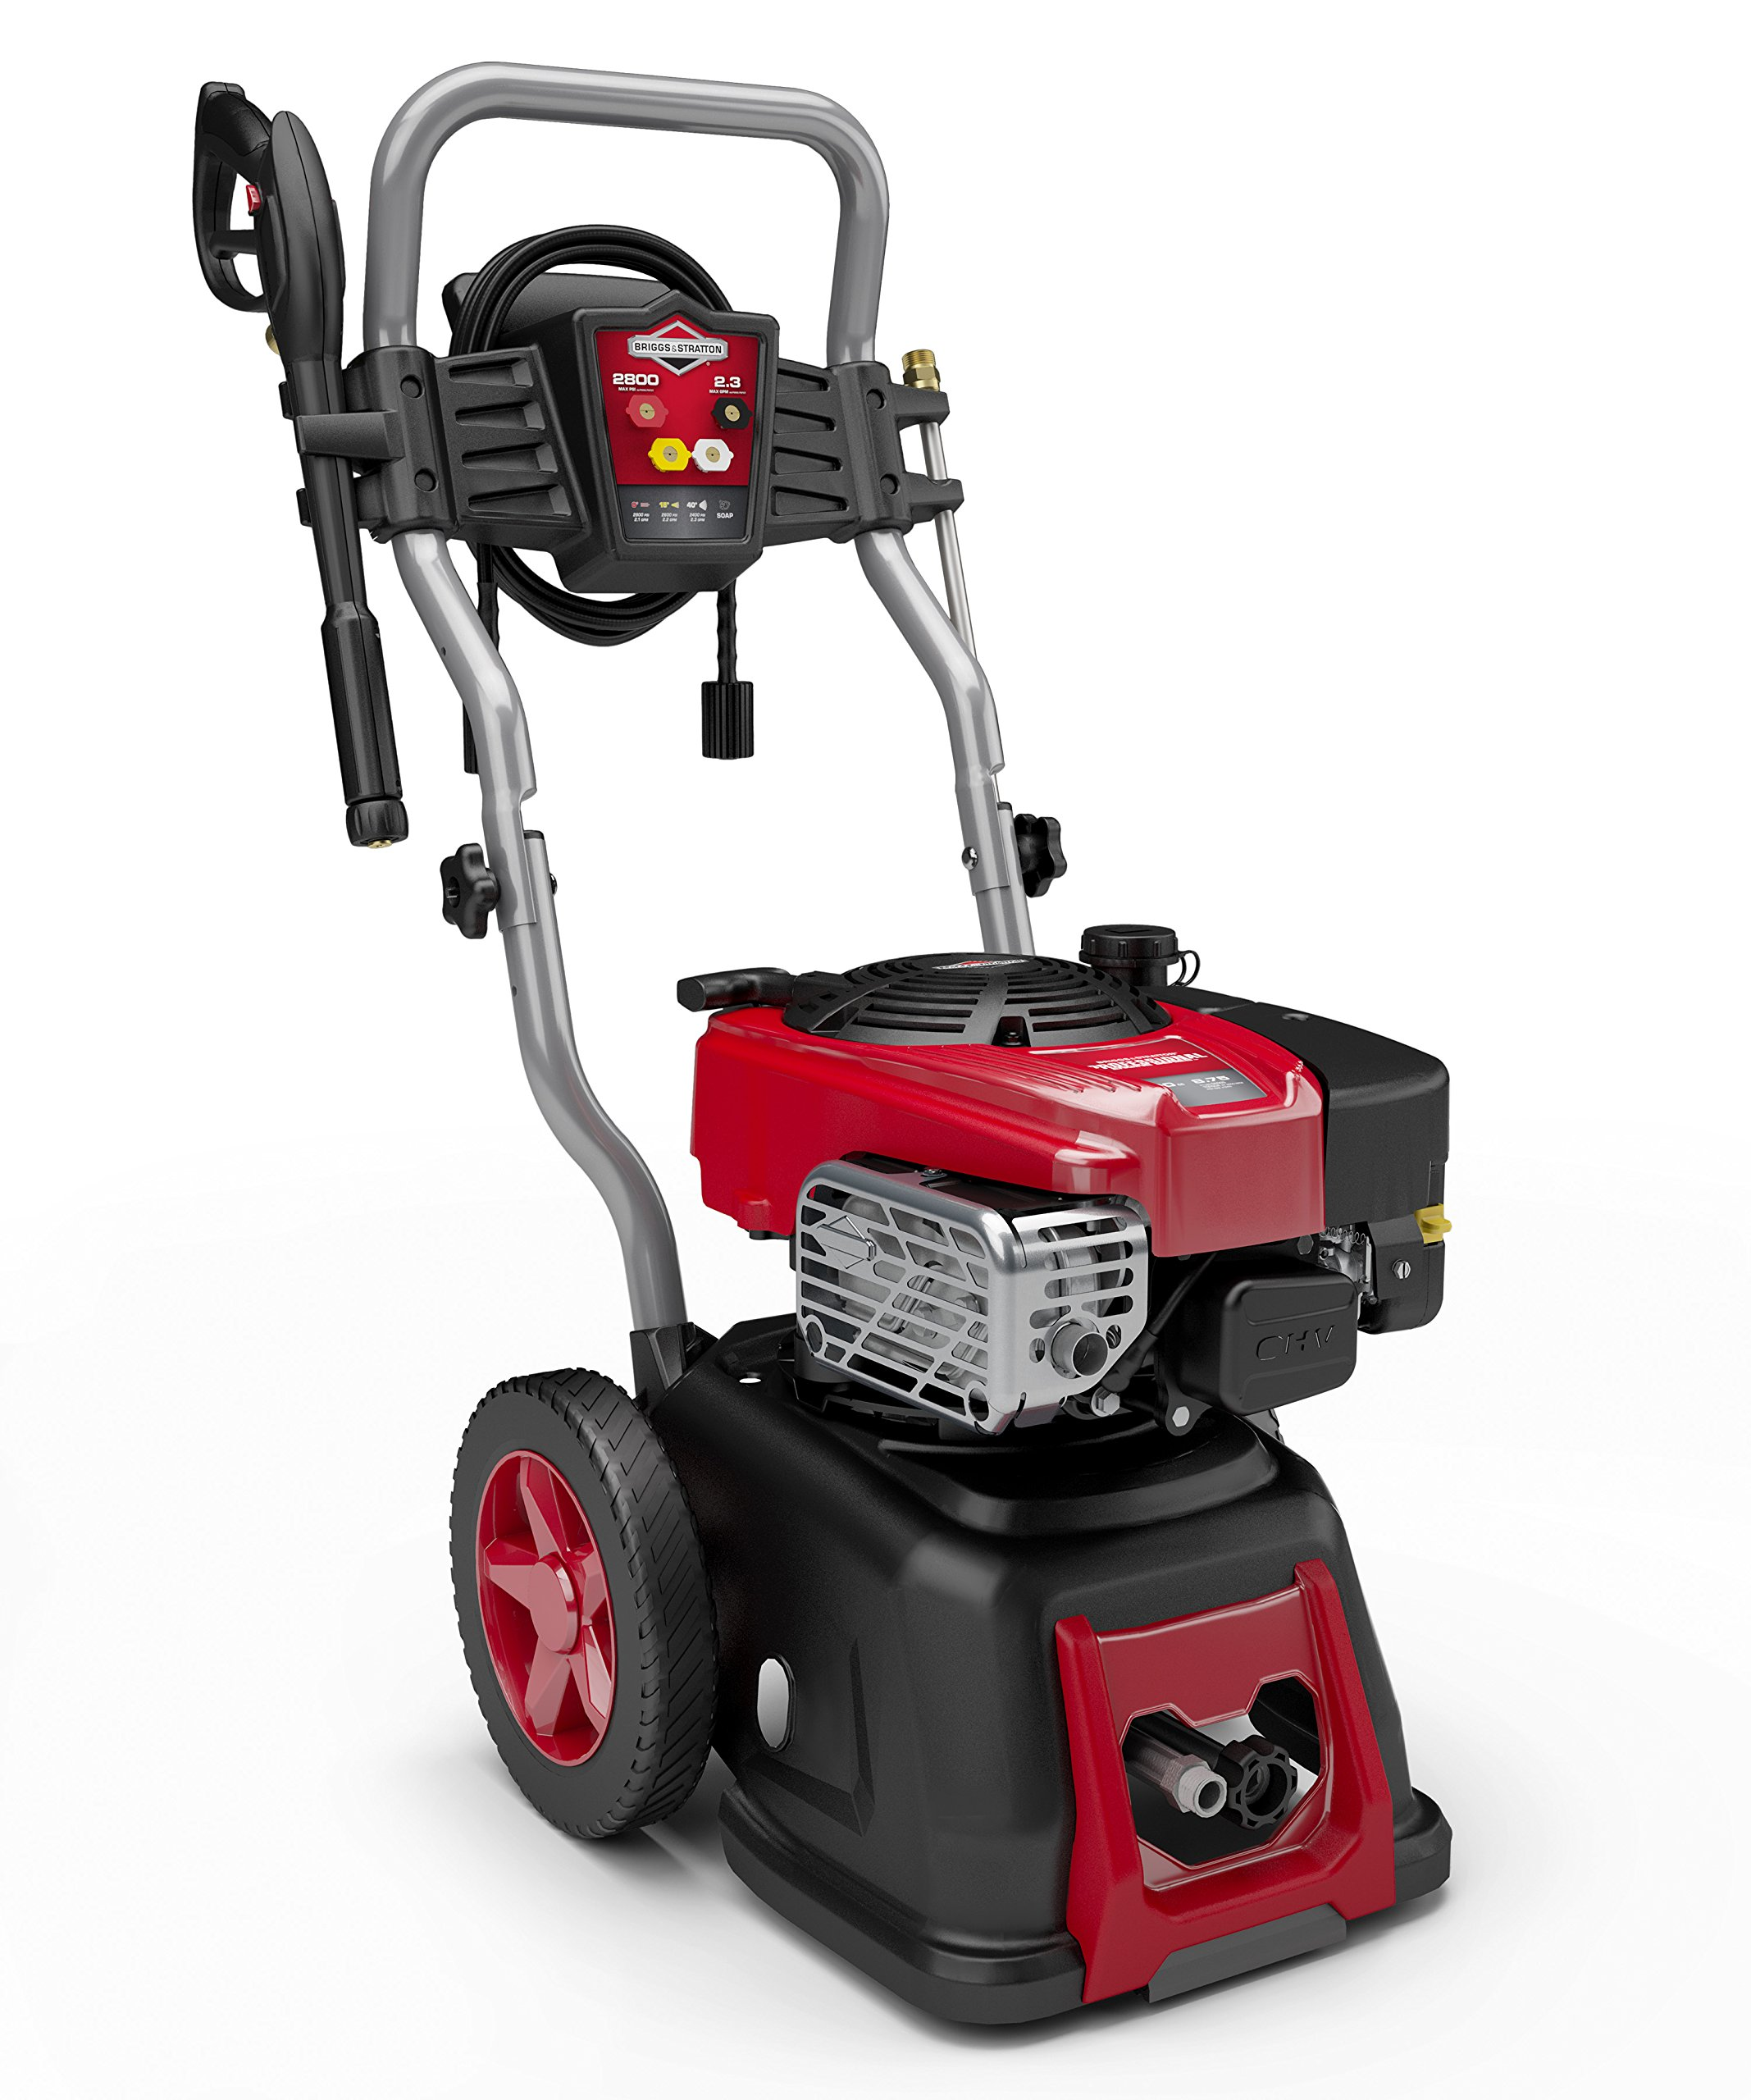 Briggs and Stratton 20593 2.3-GPM 2800-PSI Gas Pressure Washer with 850-Professional Series 190cc Engine, Full Steel Frame and ReadyStart Technology